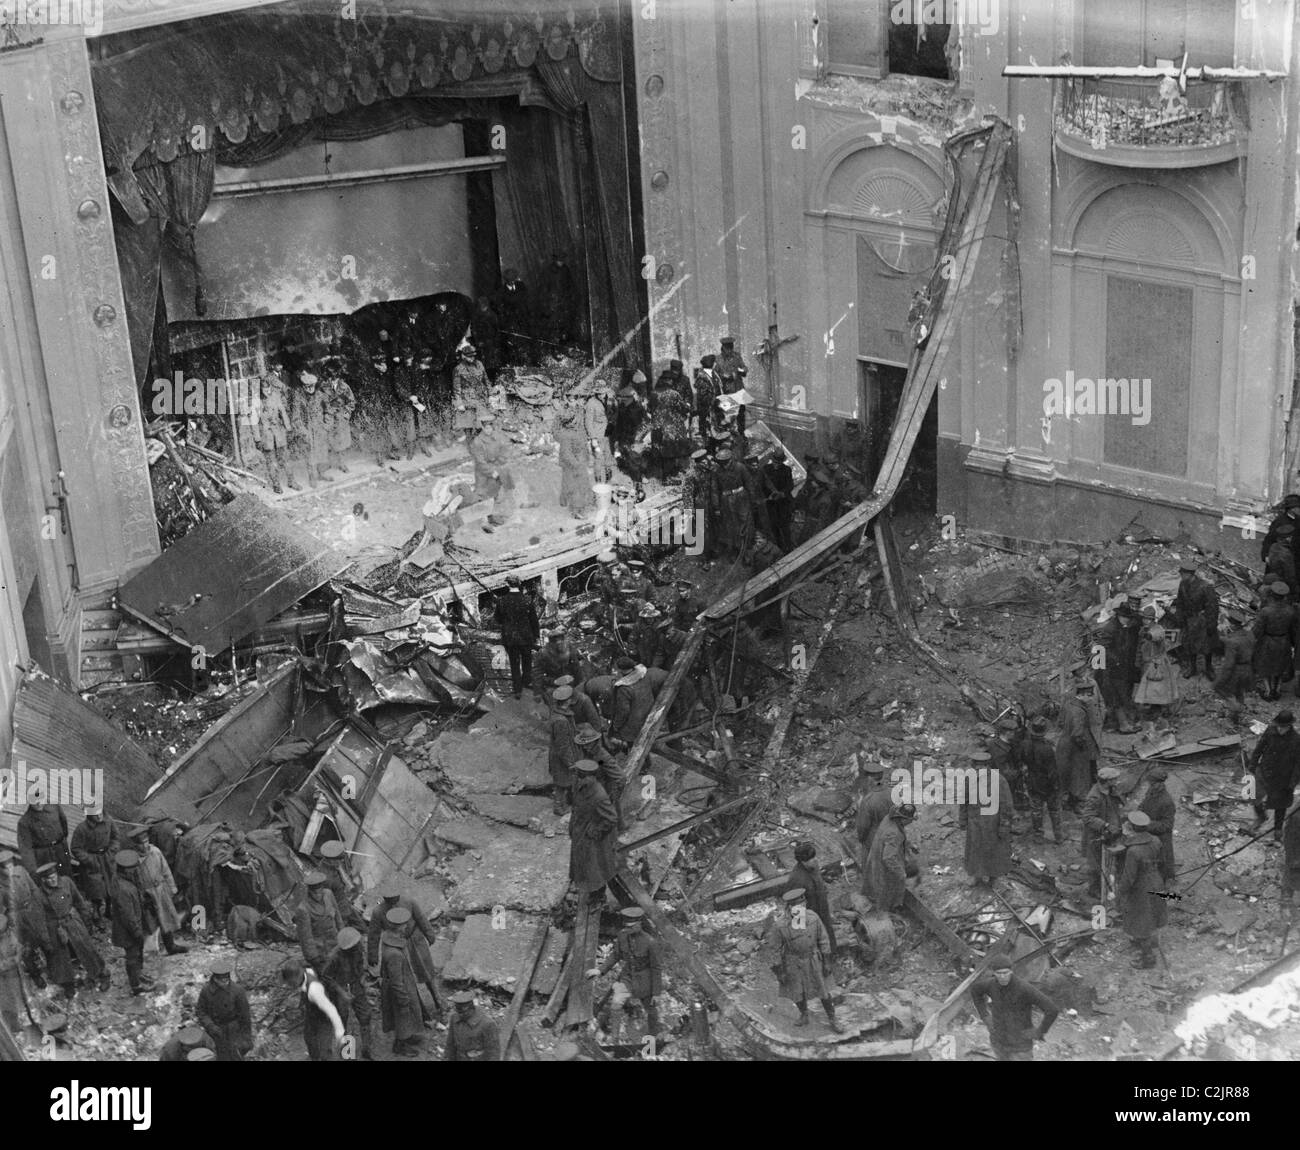 Knickerbocker Theatre in Washington DC collapse from the weight of snow - Stock Image